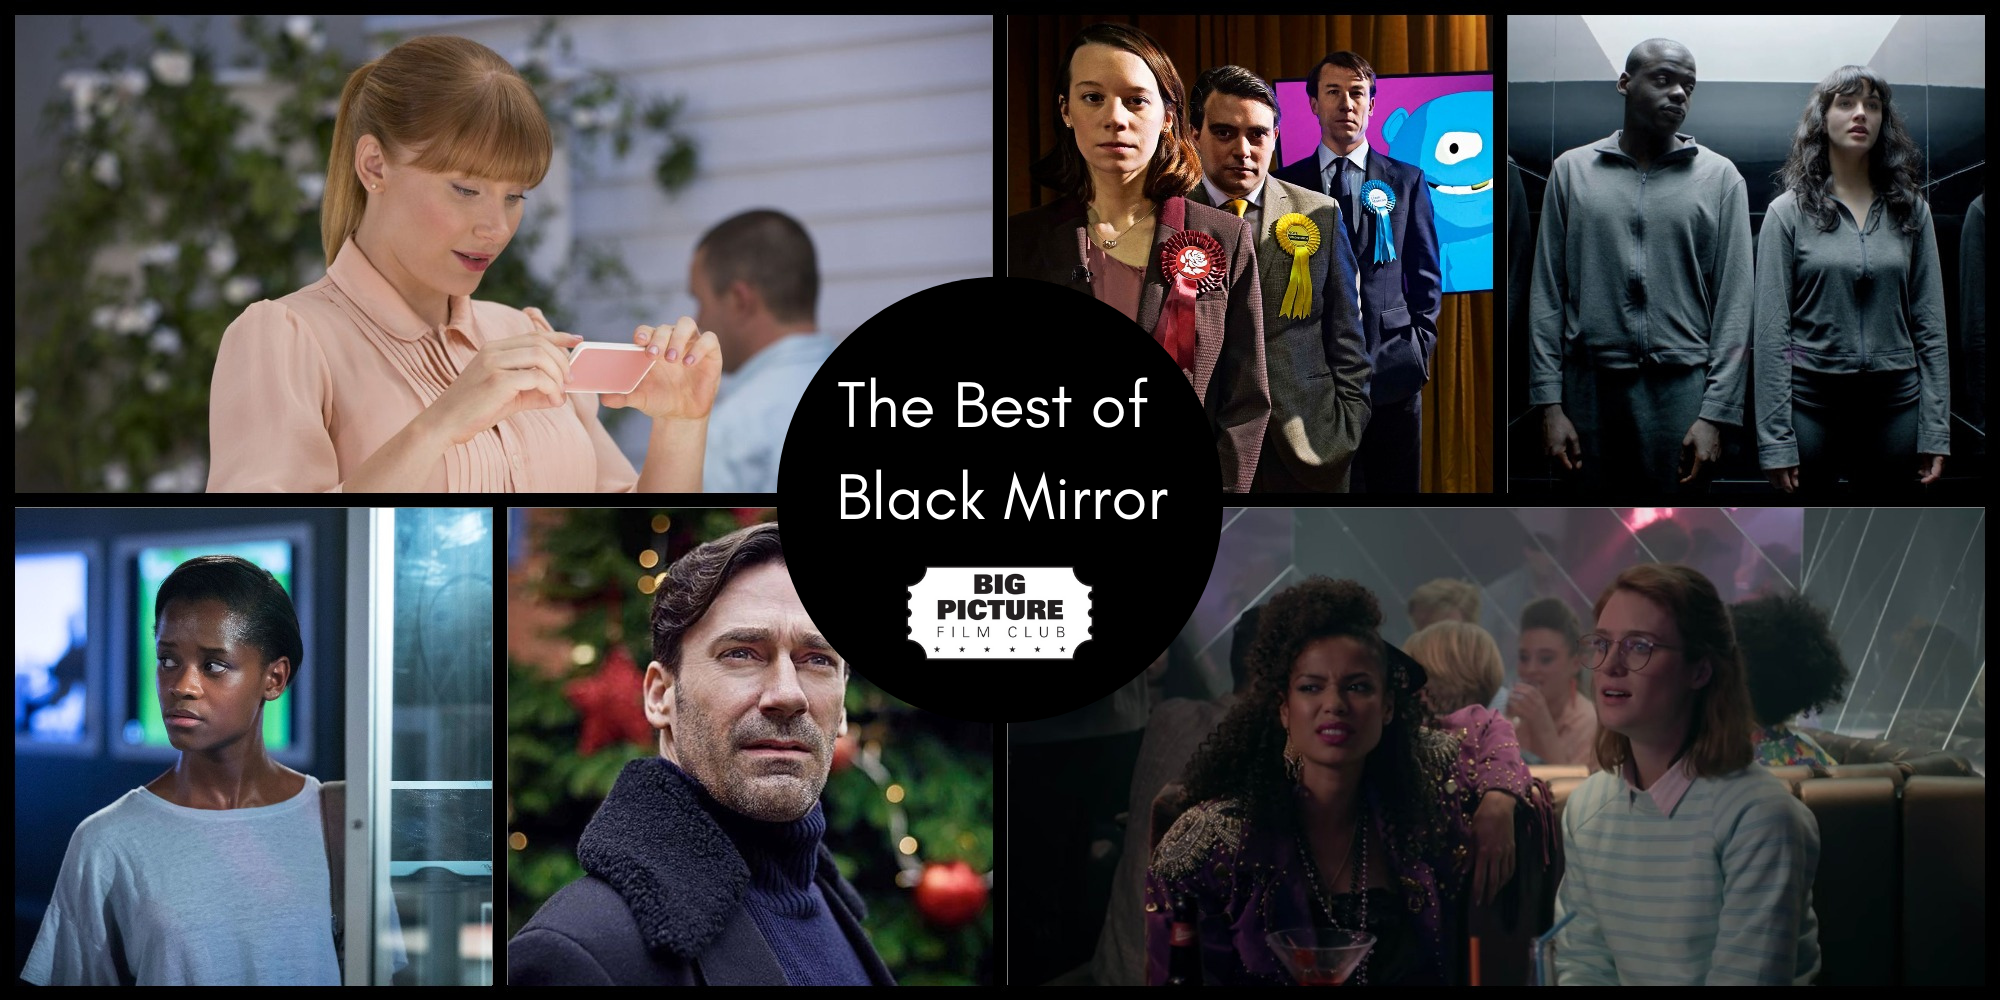 The Best of Black Mirror